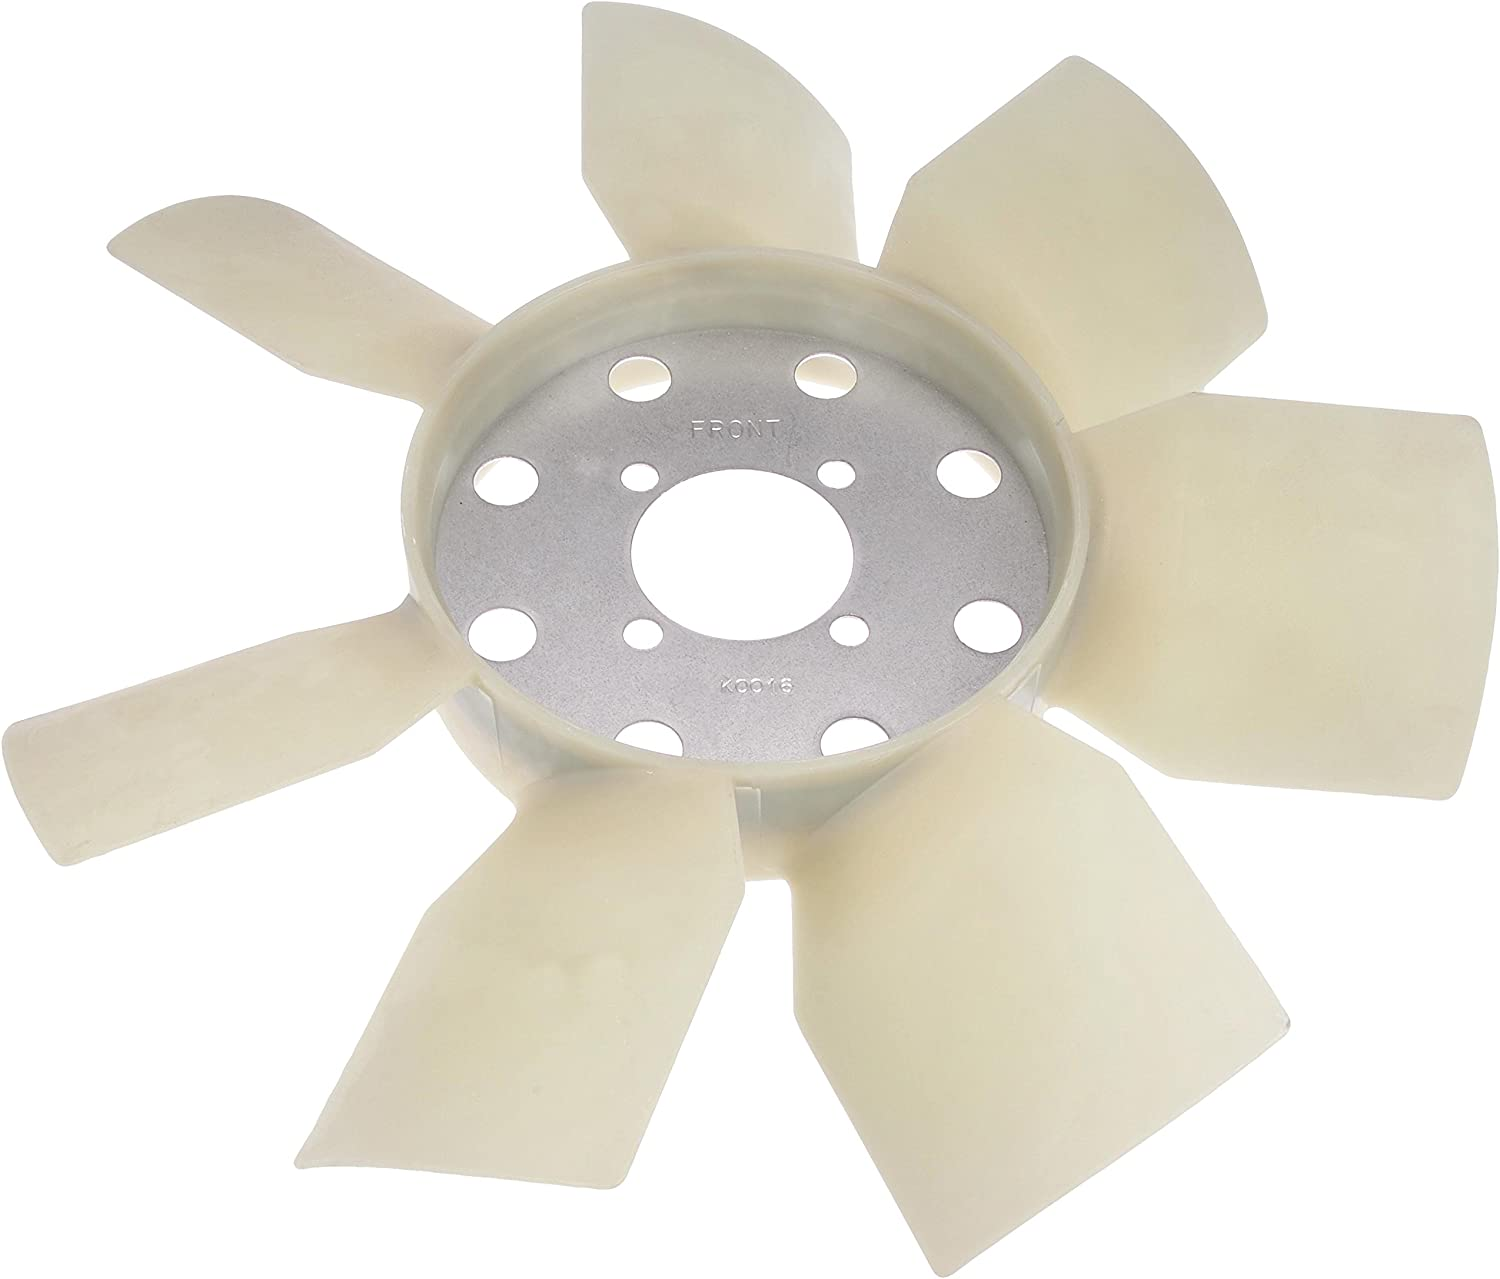 Plastic Dorman 621-322 NEW Engine Clutch Fan Blade